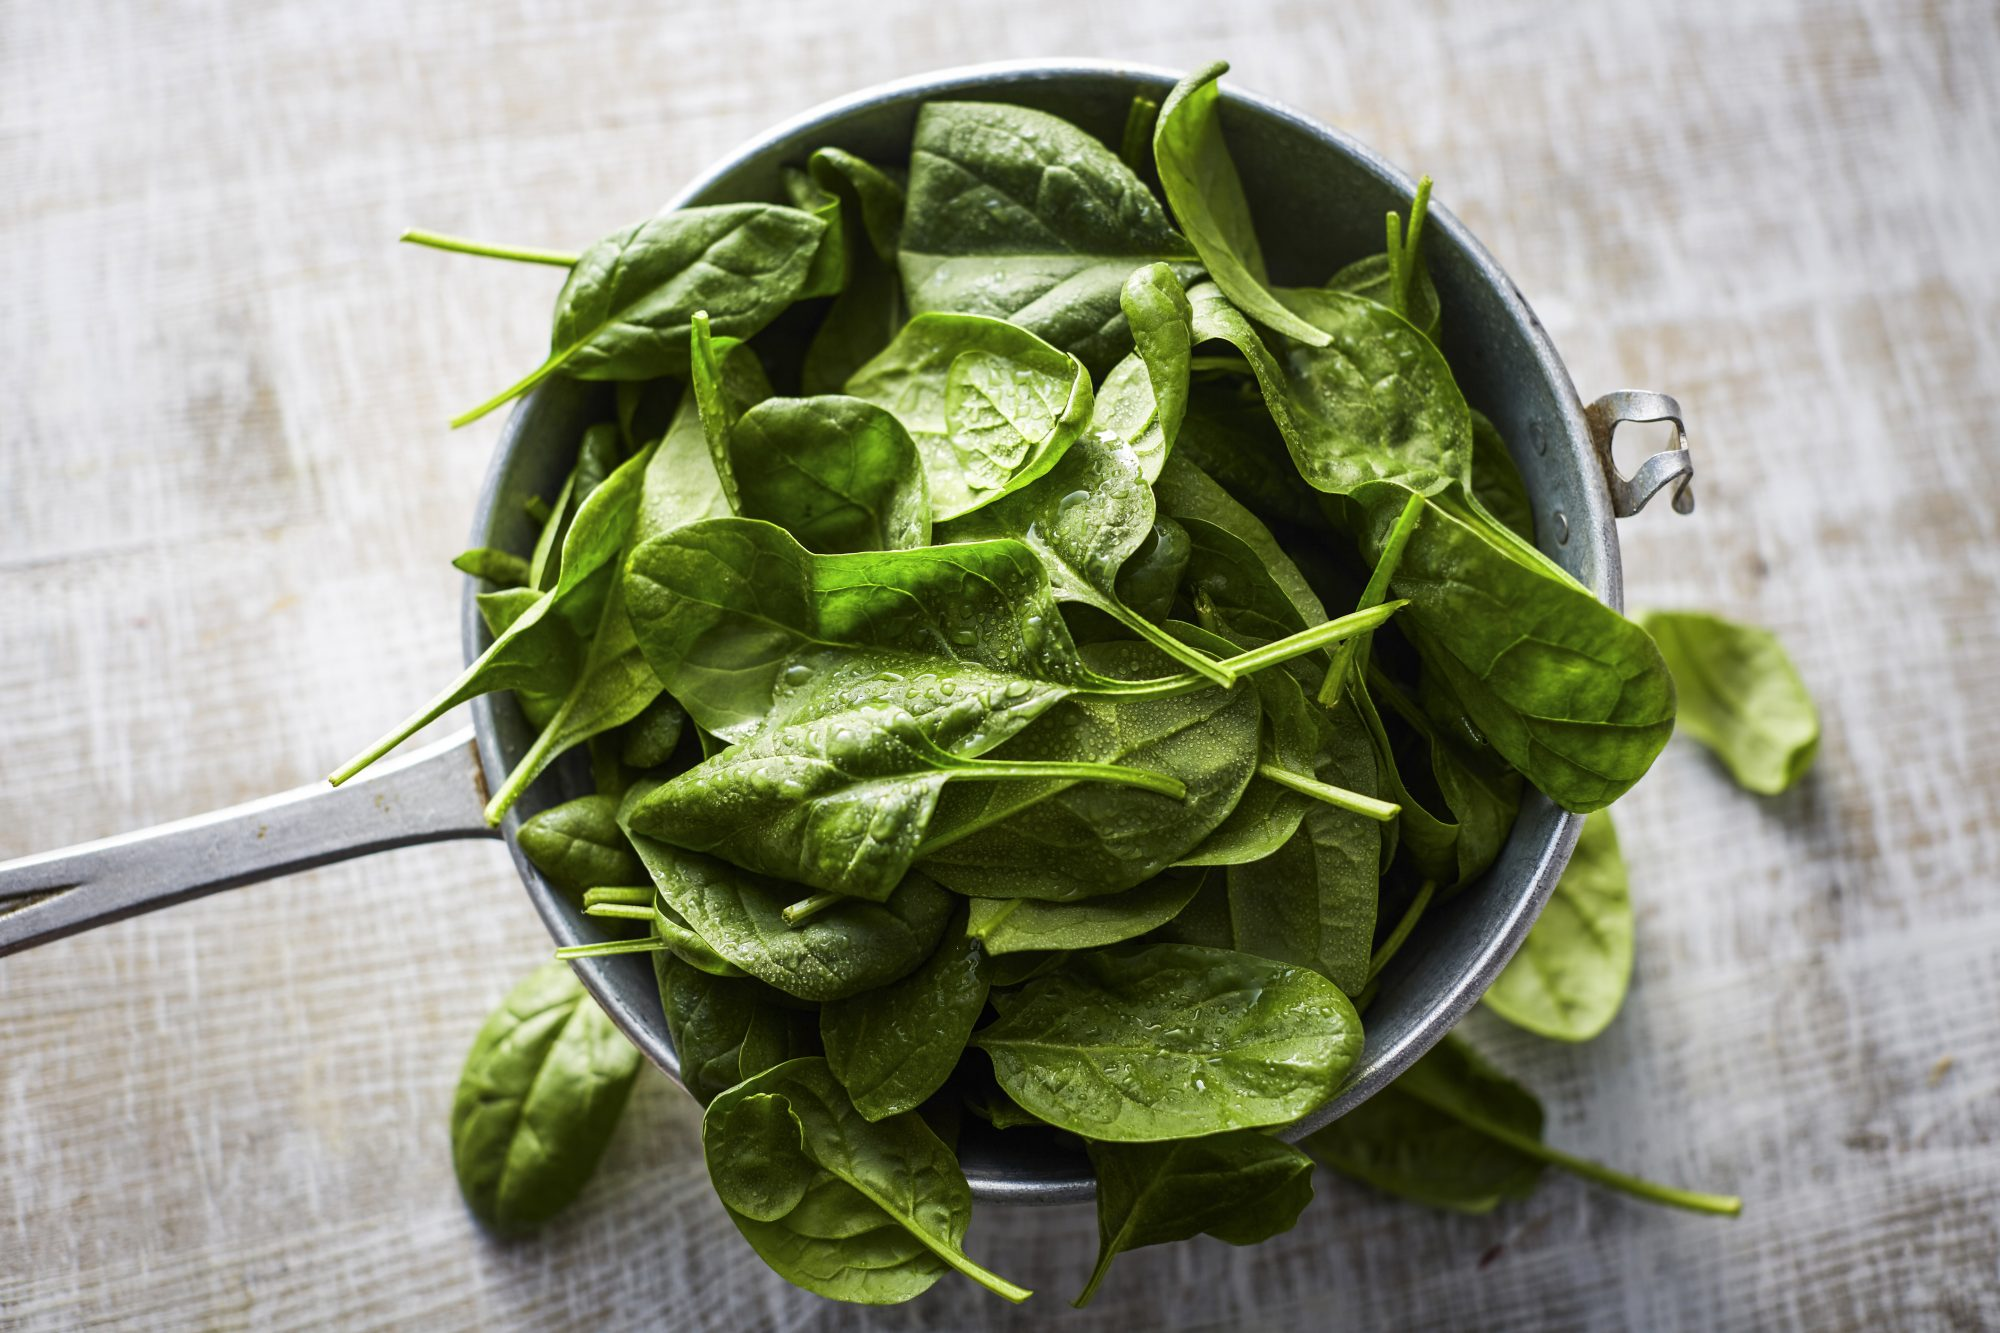 Spinach Getty 1/21/20